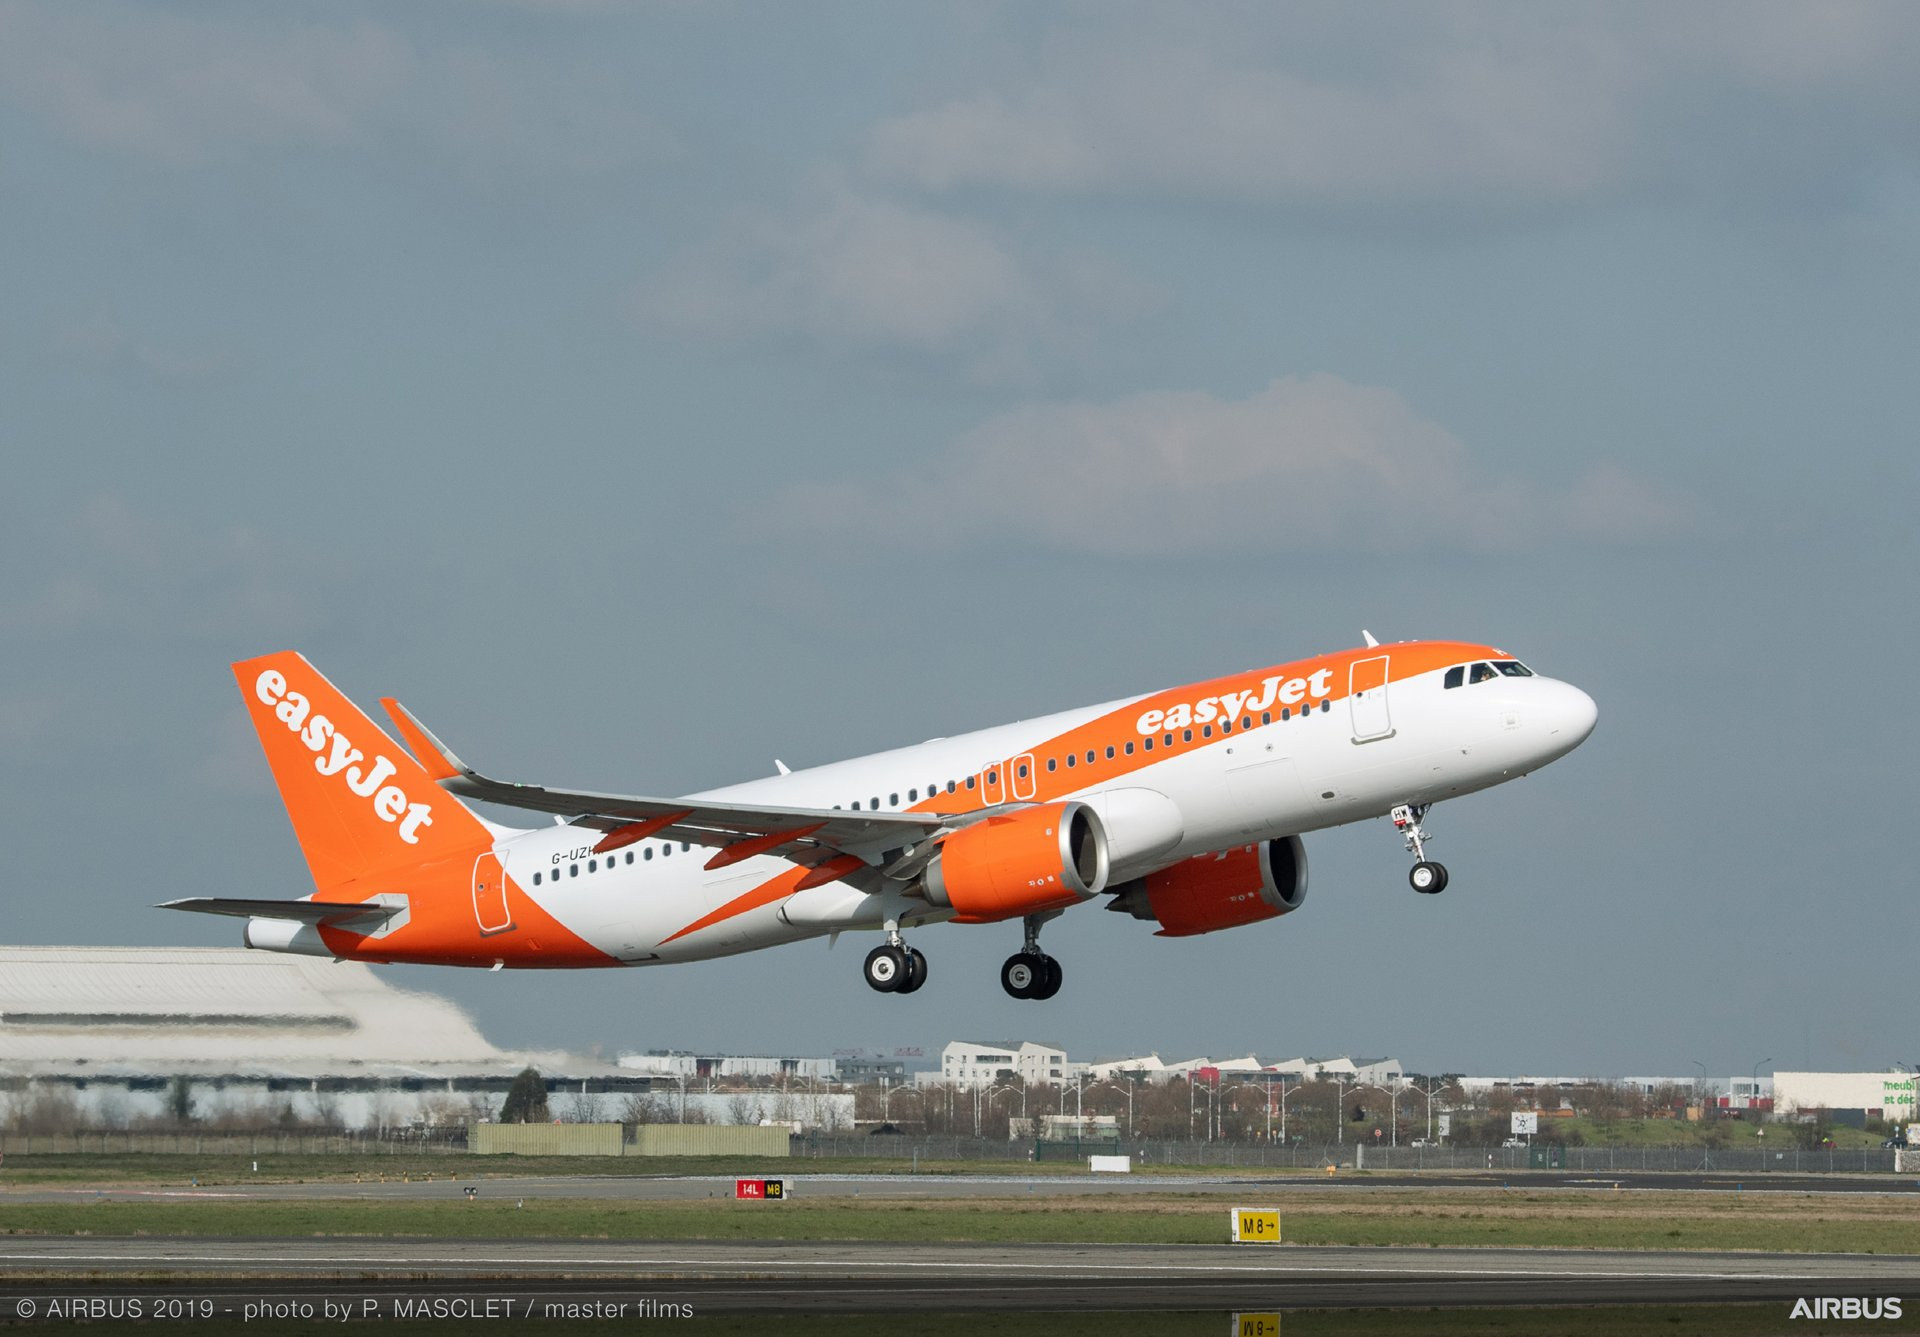 Airbus delivers first FANS-C-equipped A320 to easyJet